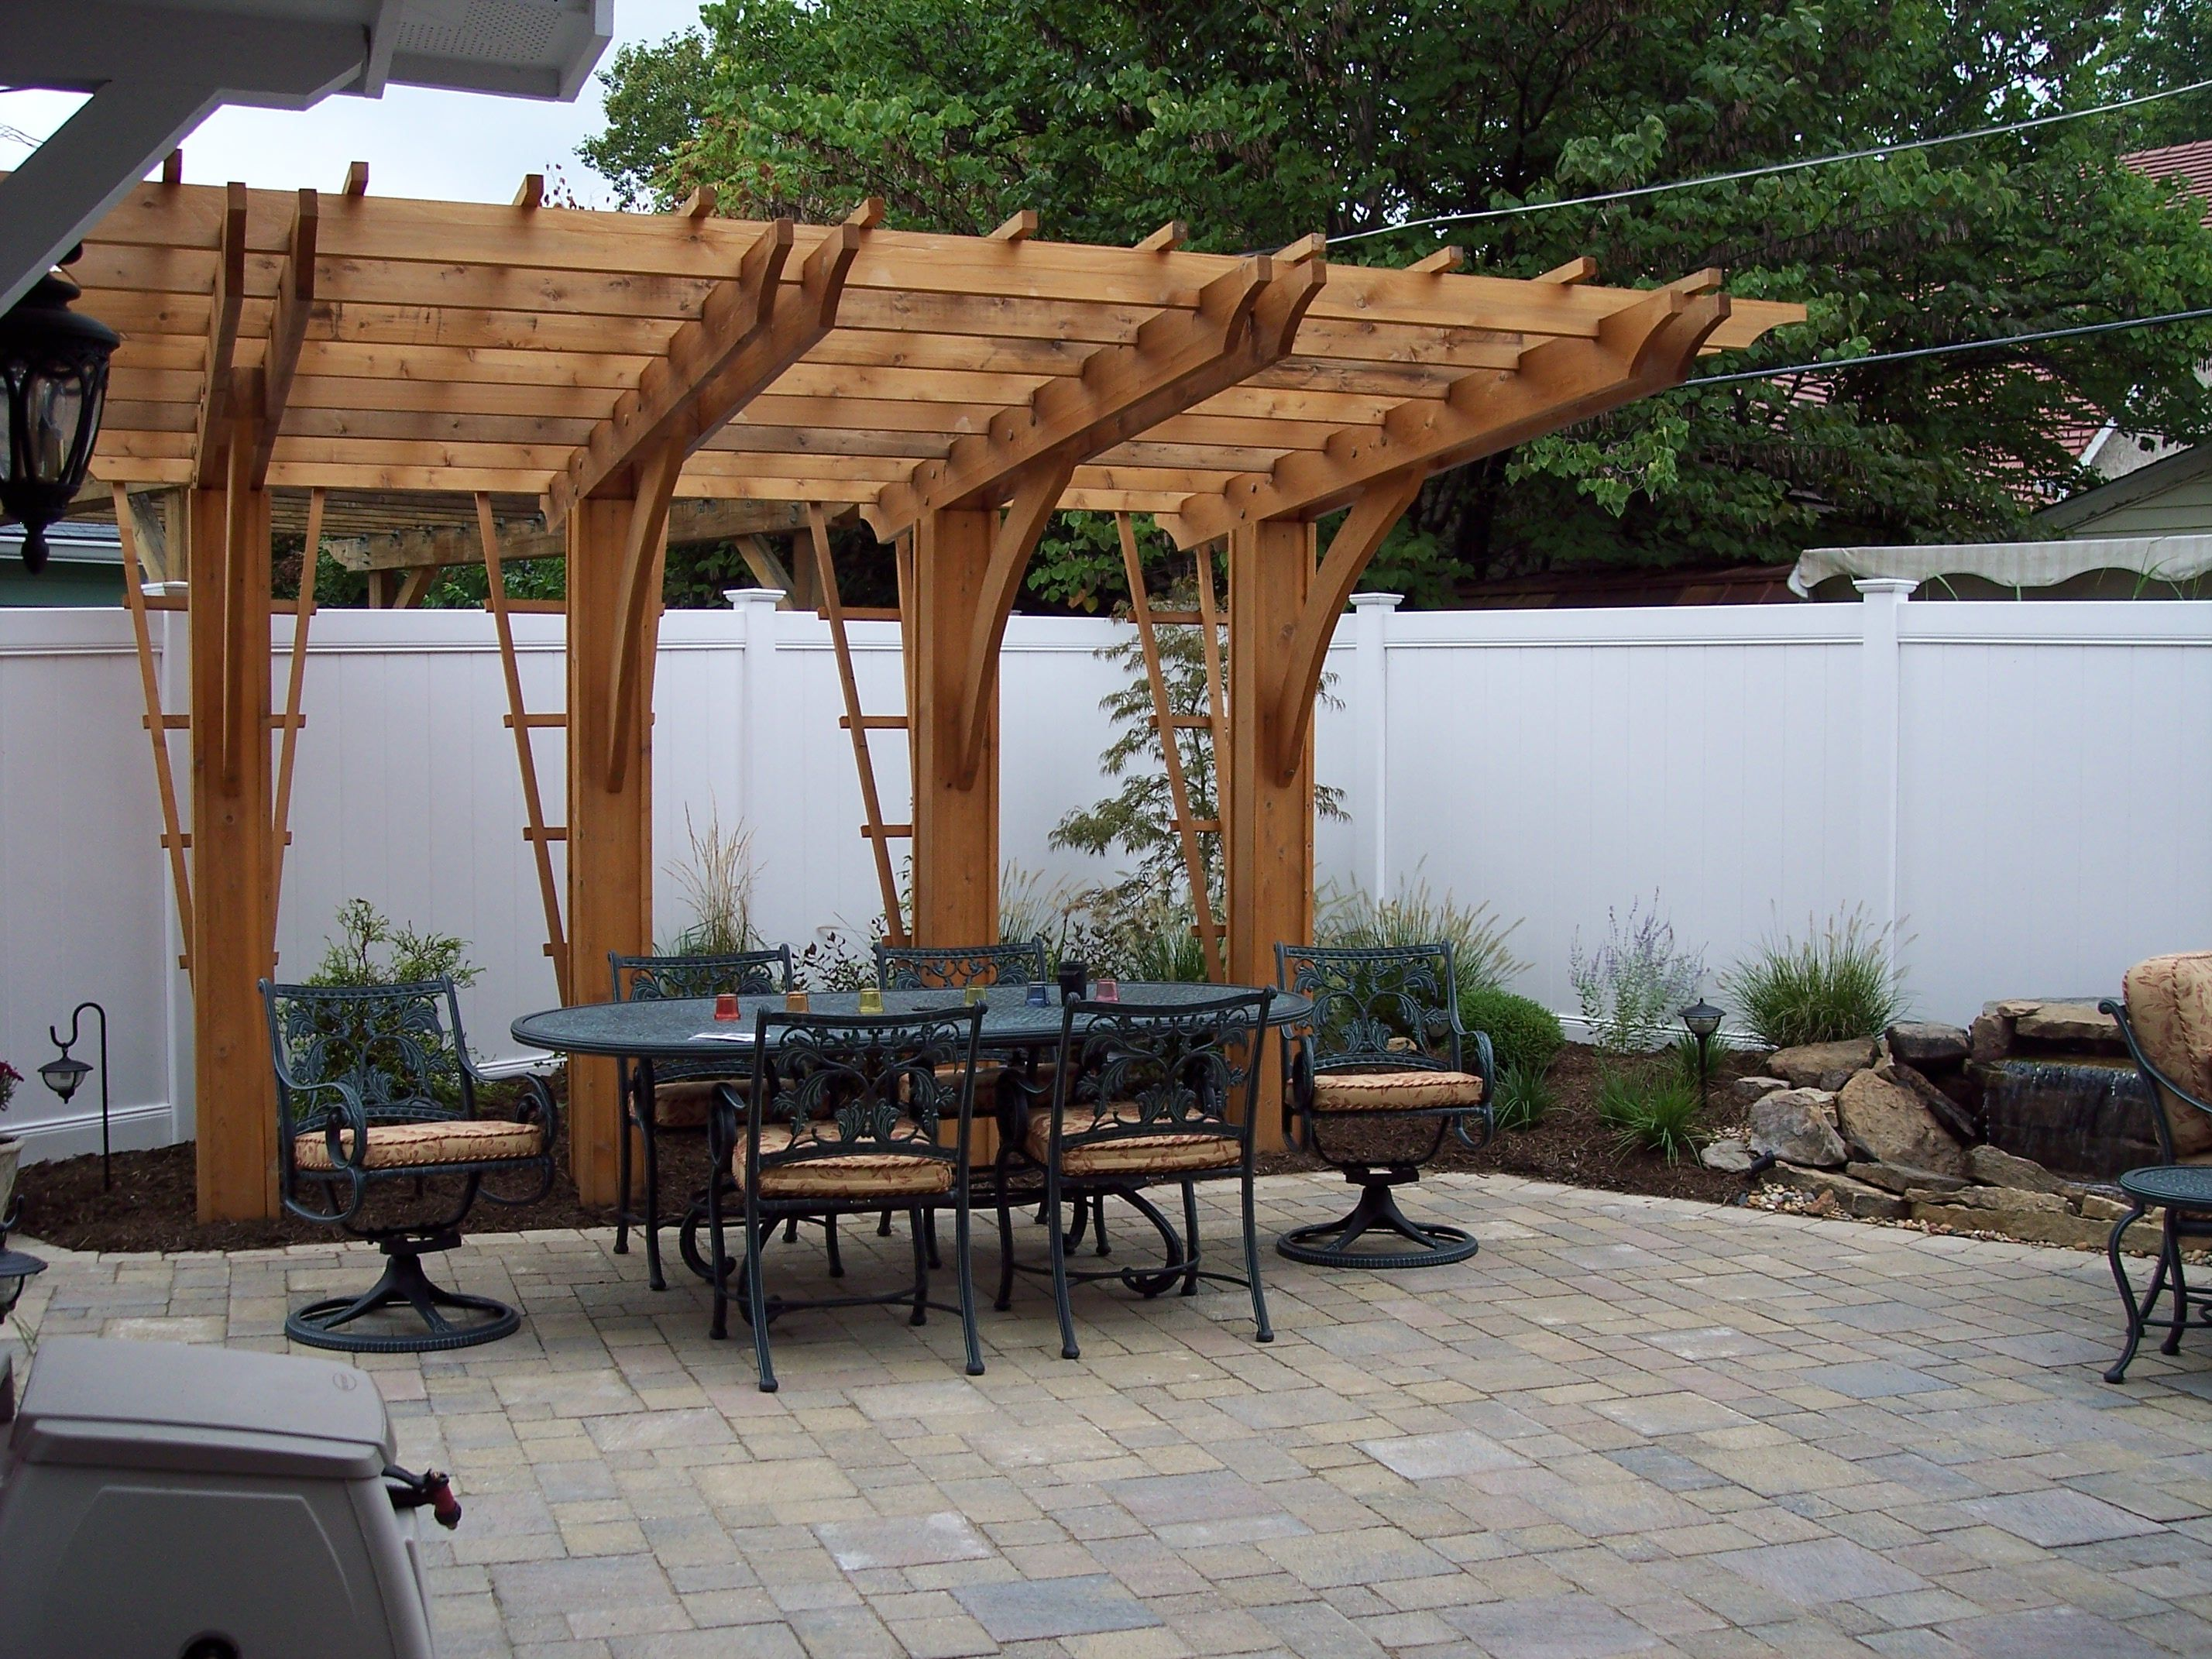 Cantilever Pergola Over Unilock Paver Patio | Pergolas | Pinterest ...